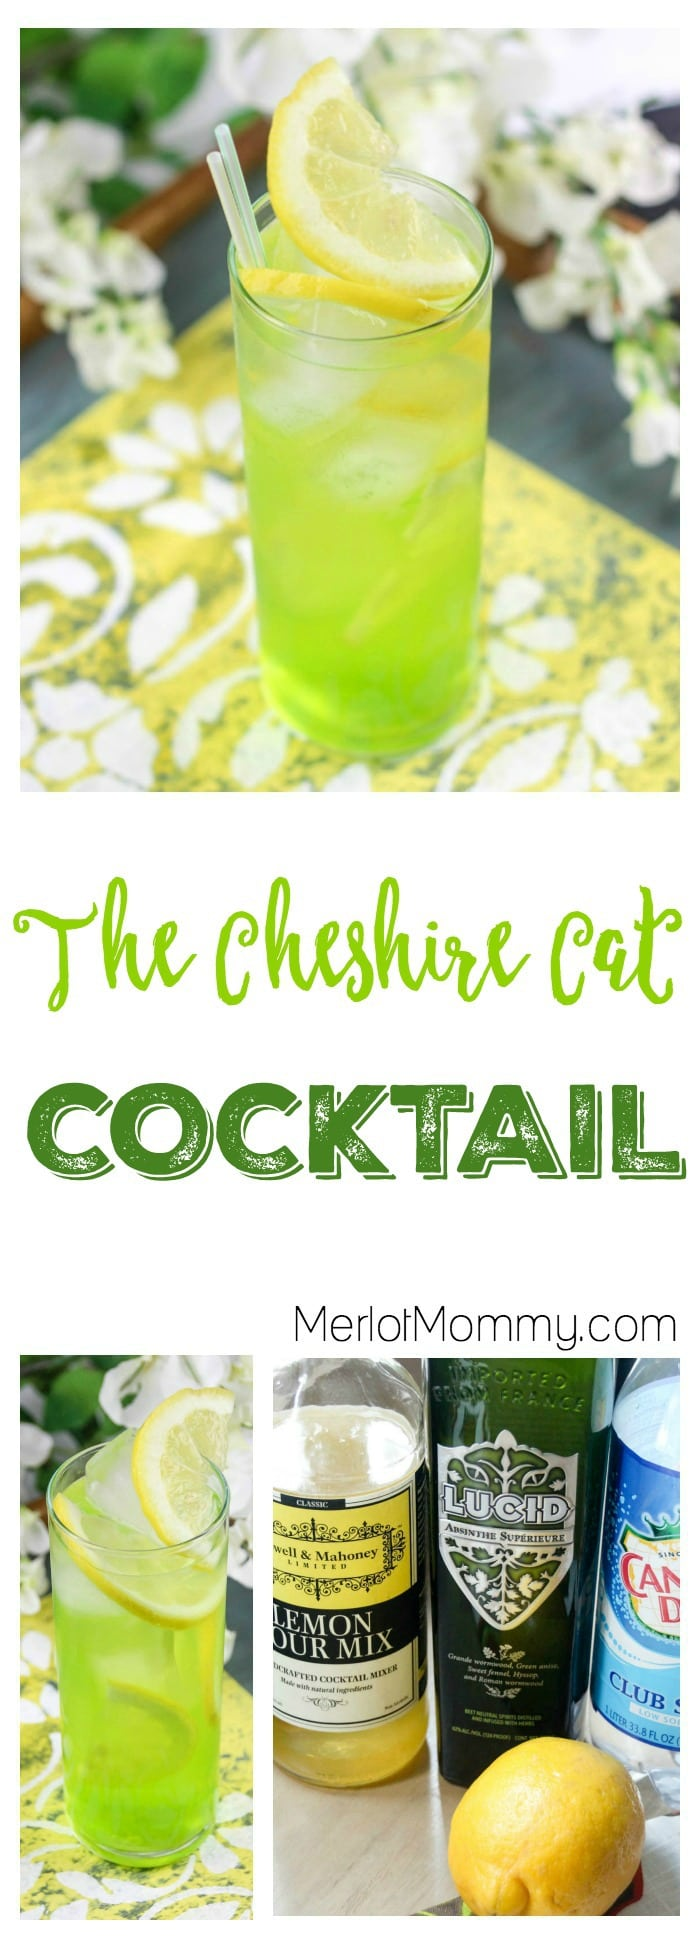 The Cheshire Cat Cocktail, Disney's Alice Through the Looking Glass-Inspired Drink Recipe